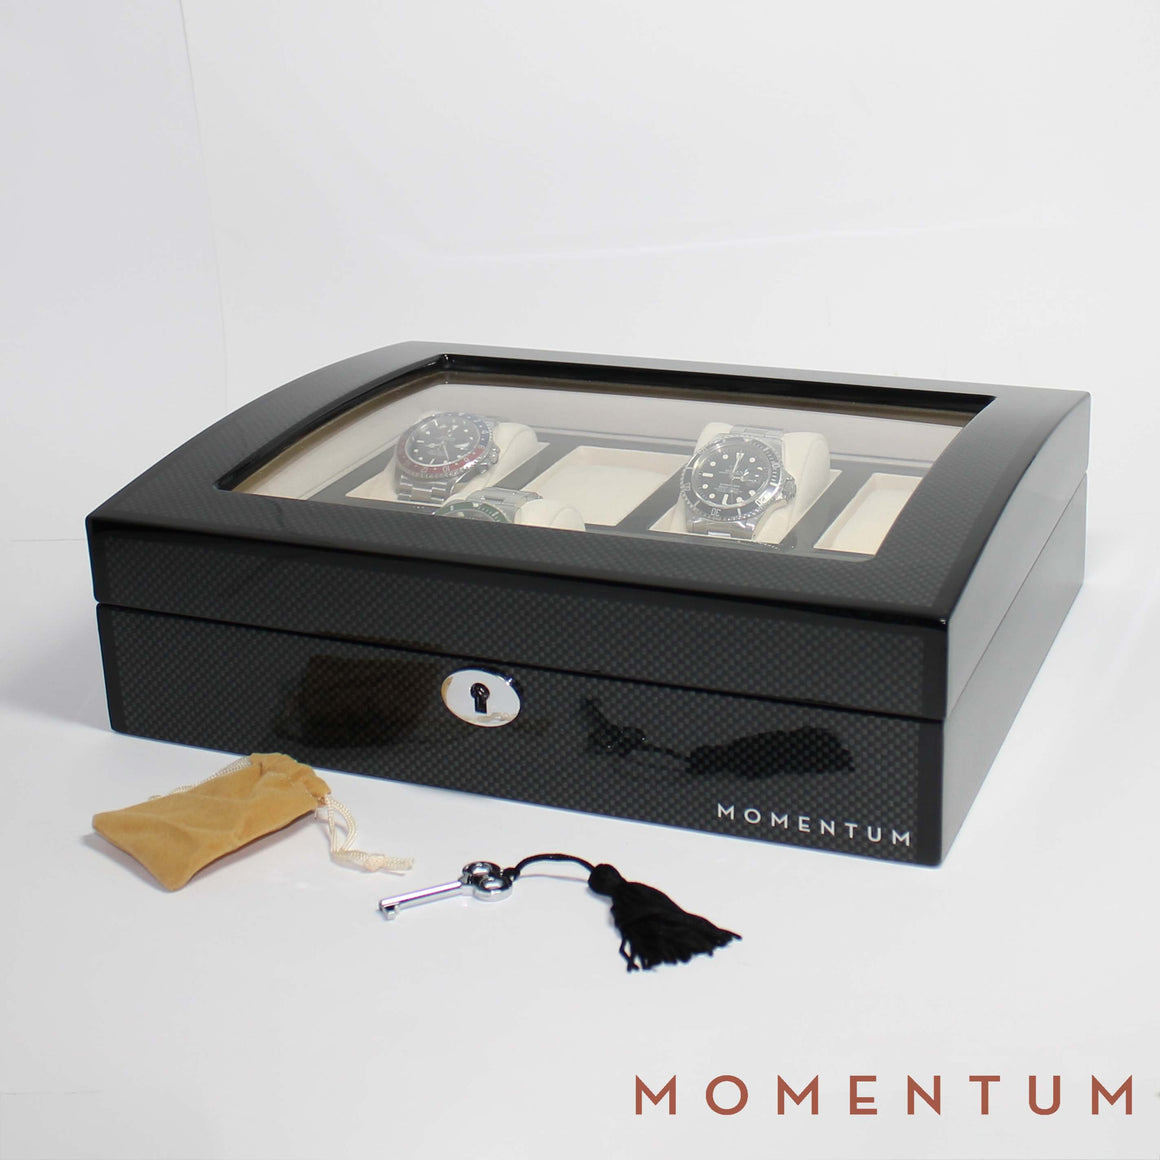 Alhambra - Watch Box - Momentum Dubai